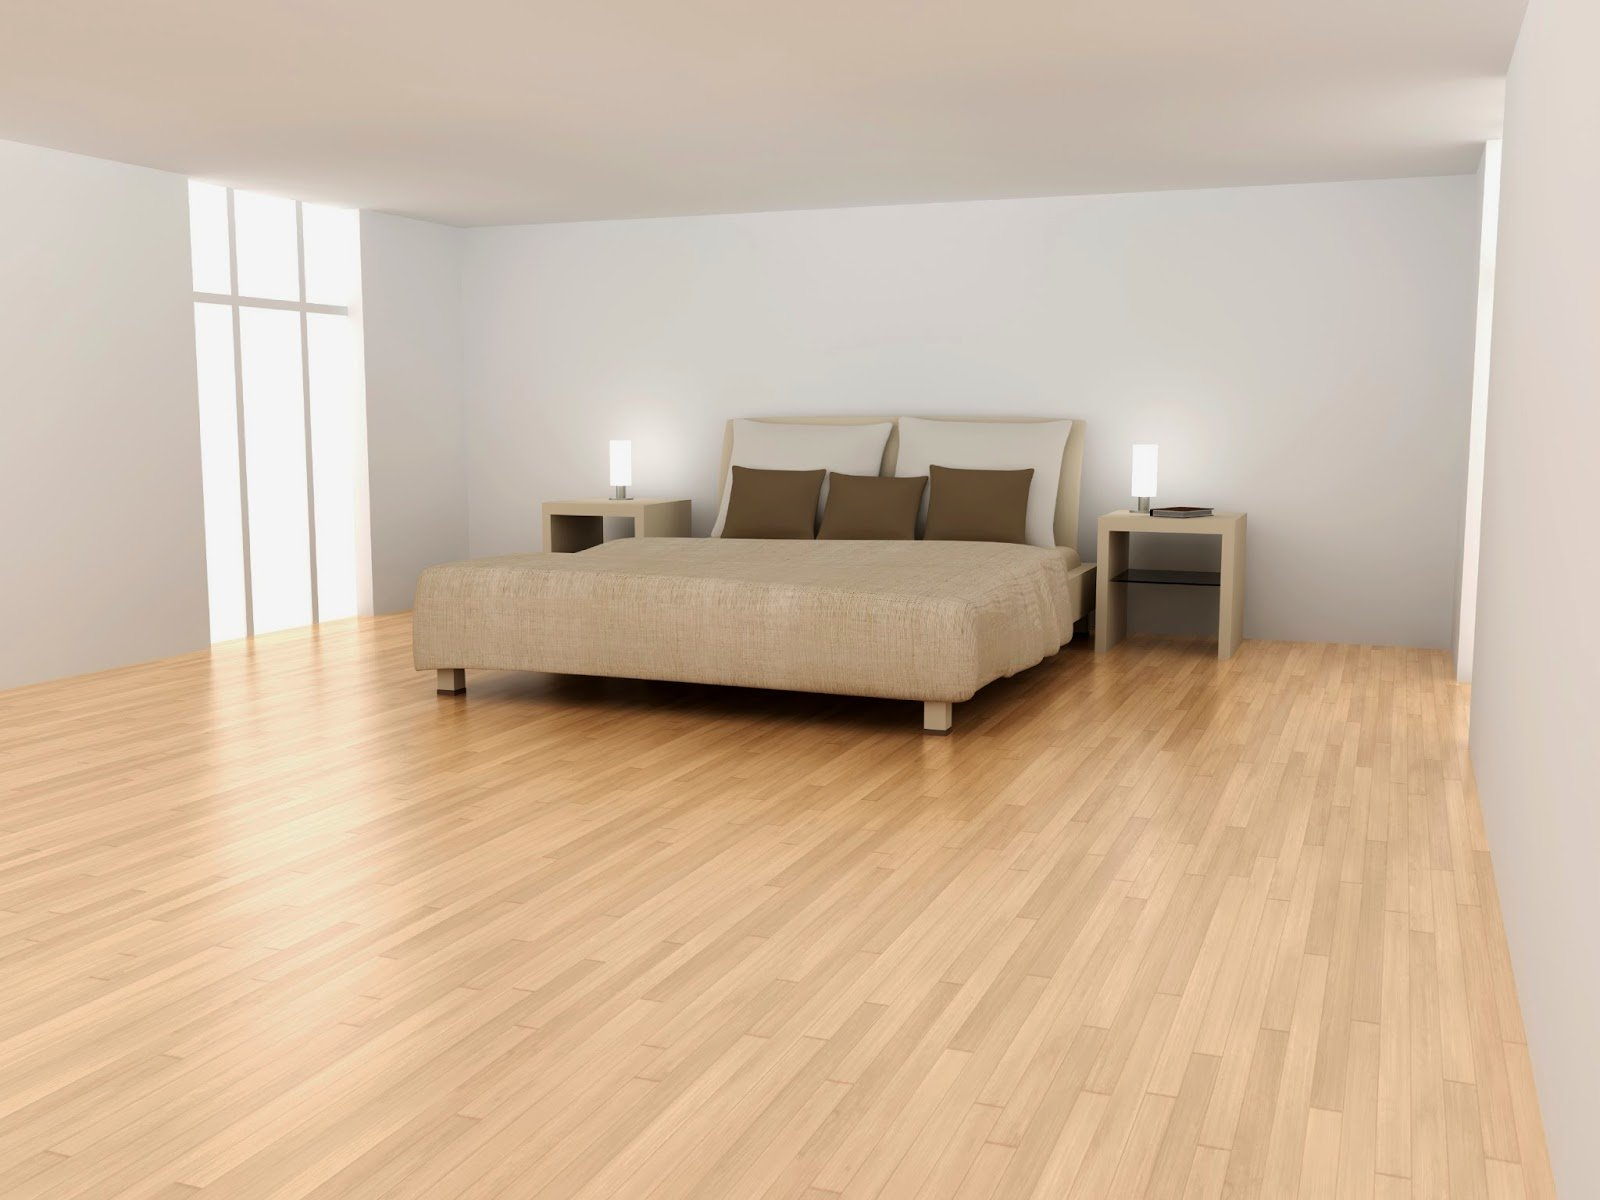 Best Jcb Interiors Bedroom Flooring Carpet Vs Hardwood With Pictures